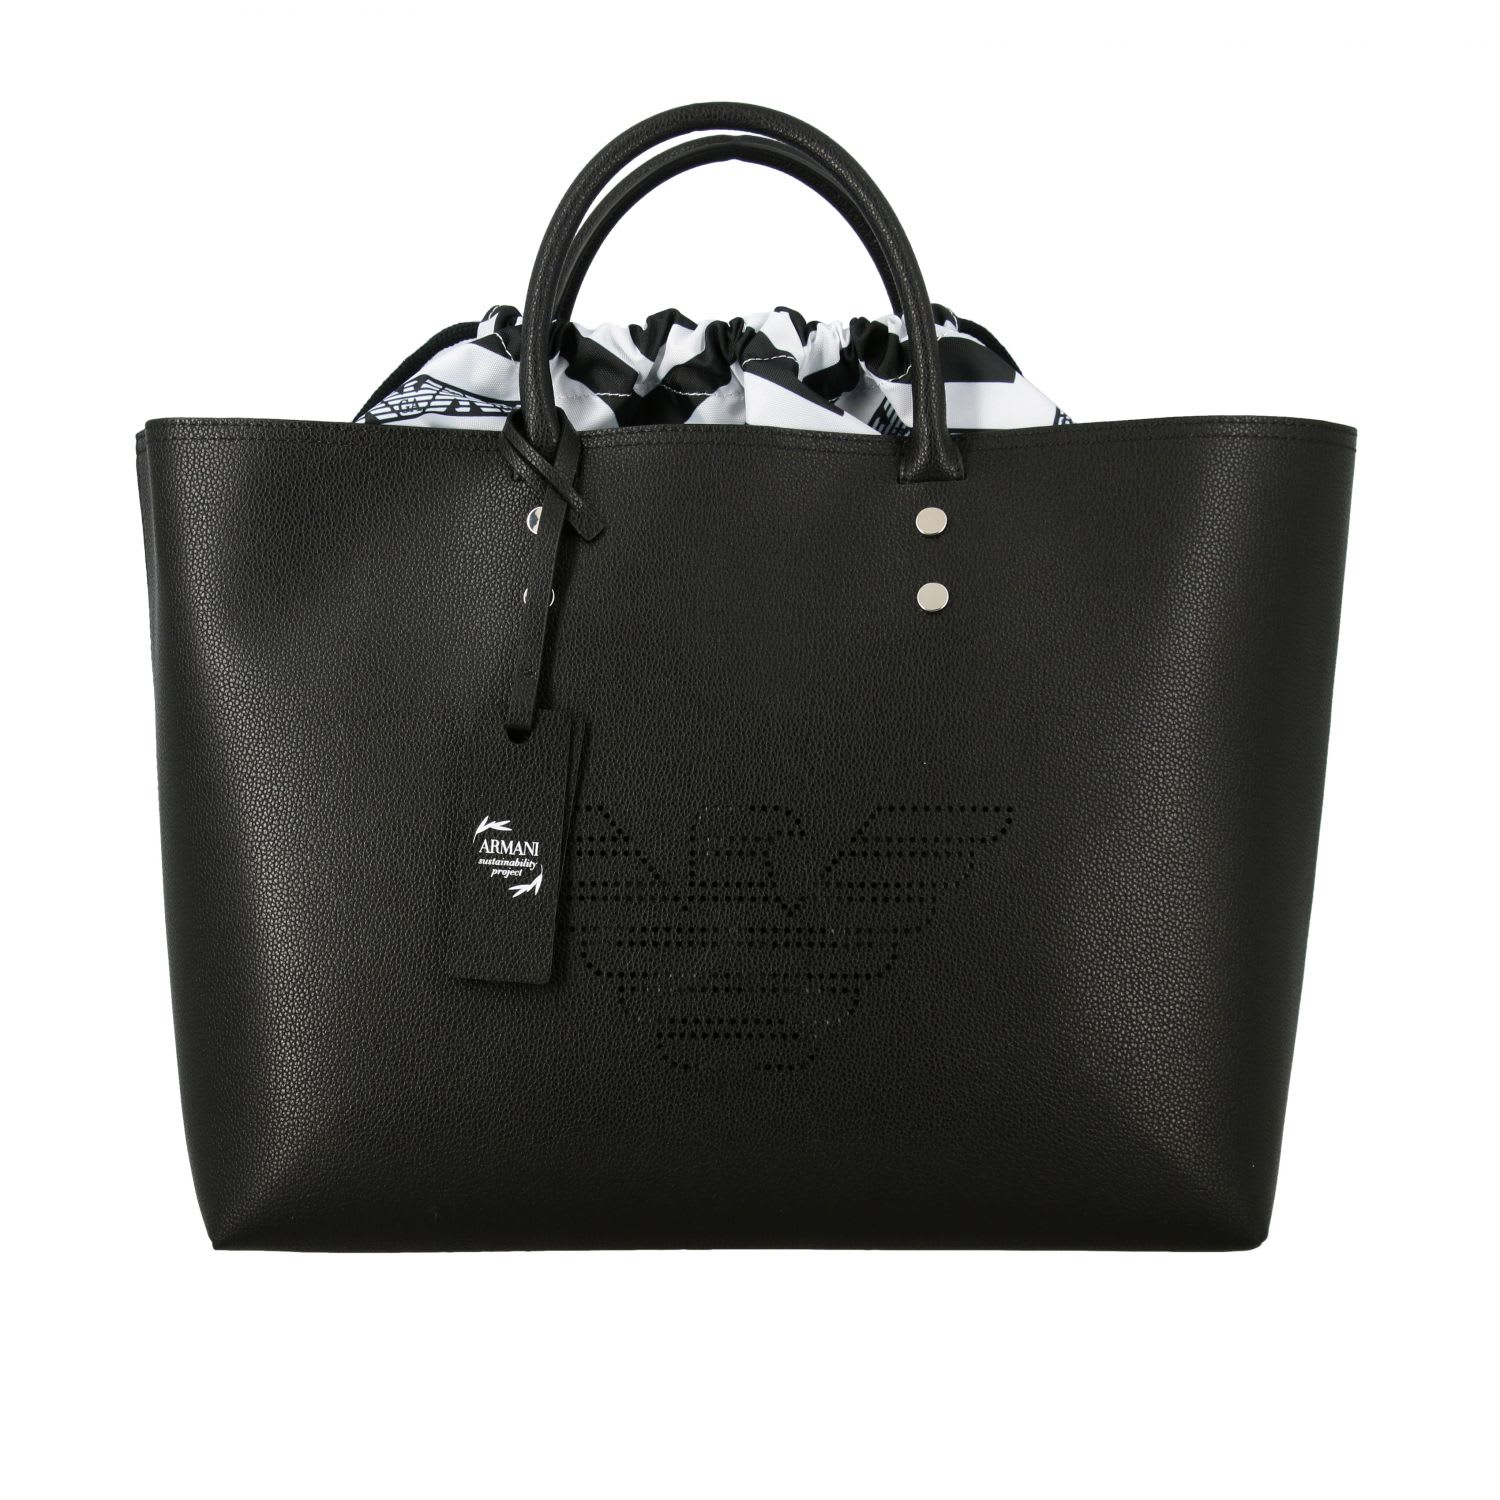 Emporio Armani Shopping Bag With Perforated Logo In Black